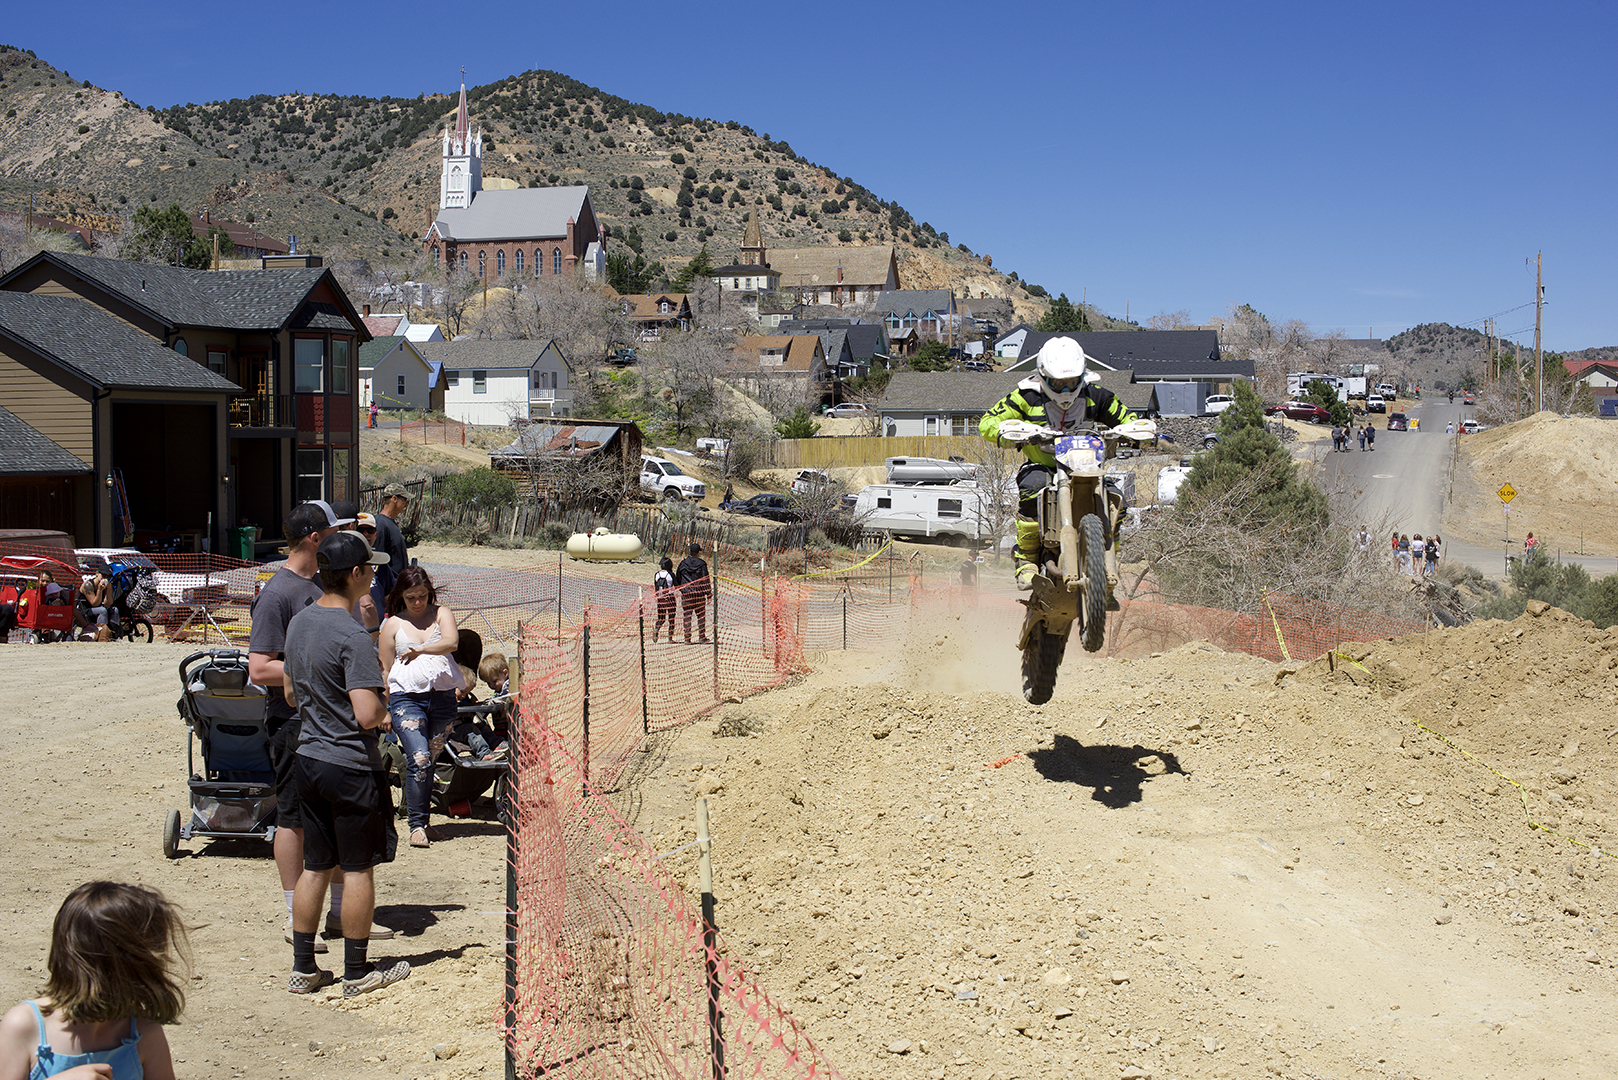 The course comes in to town in a couple places and spectators can get as close a look at the racing as they want to. Willy Heiss gets it going past the pits.